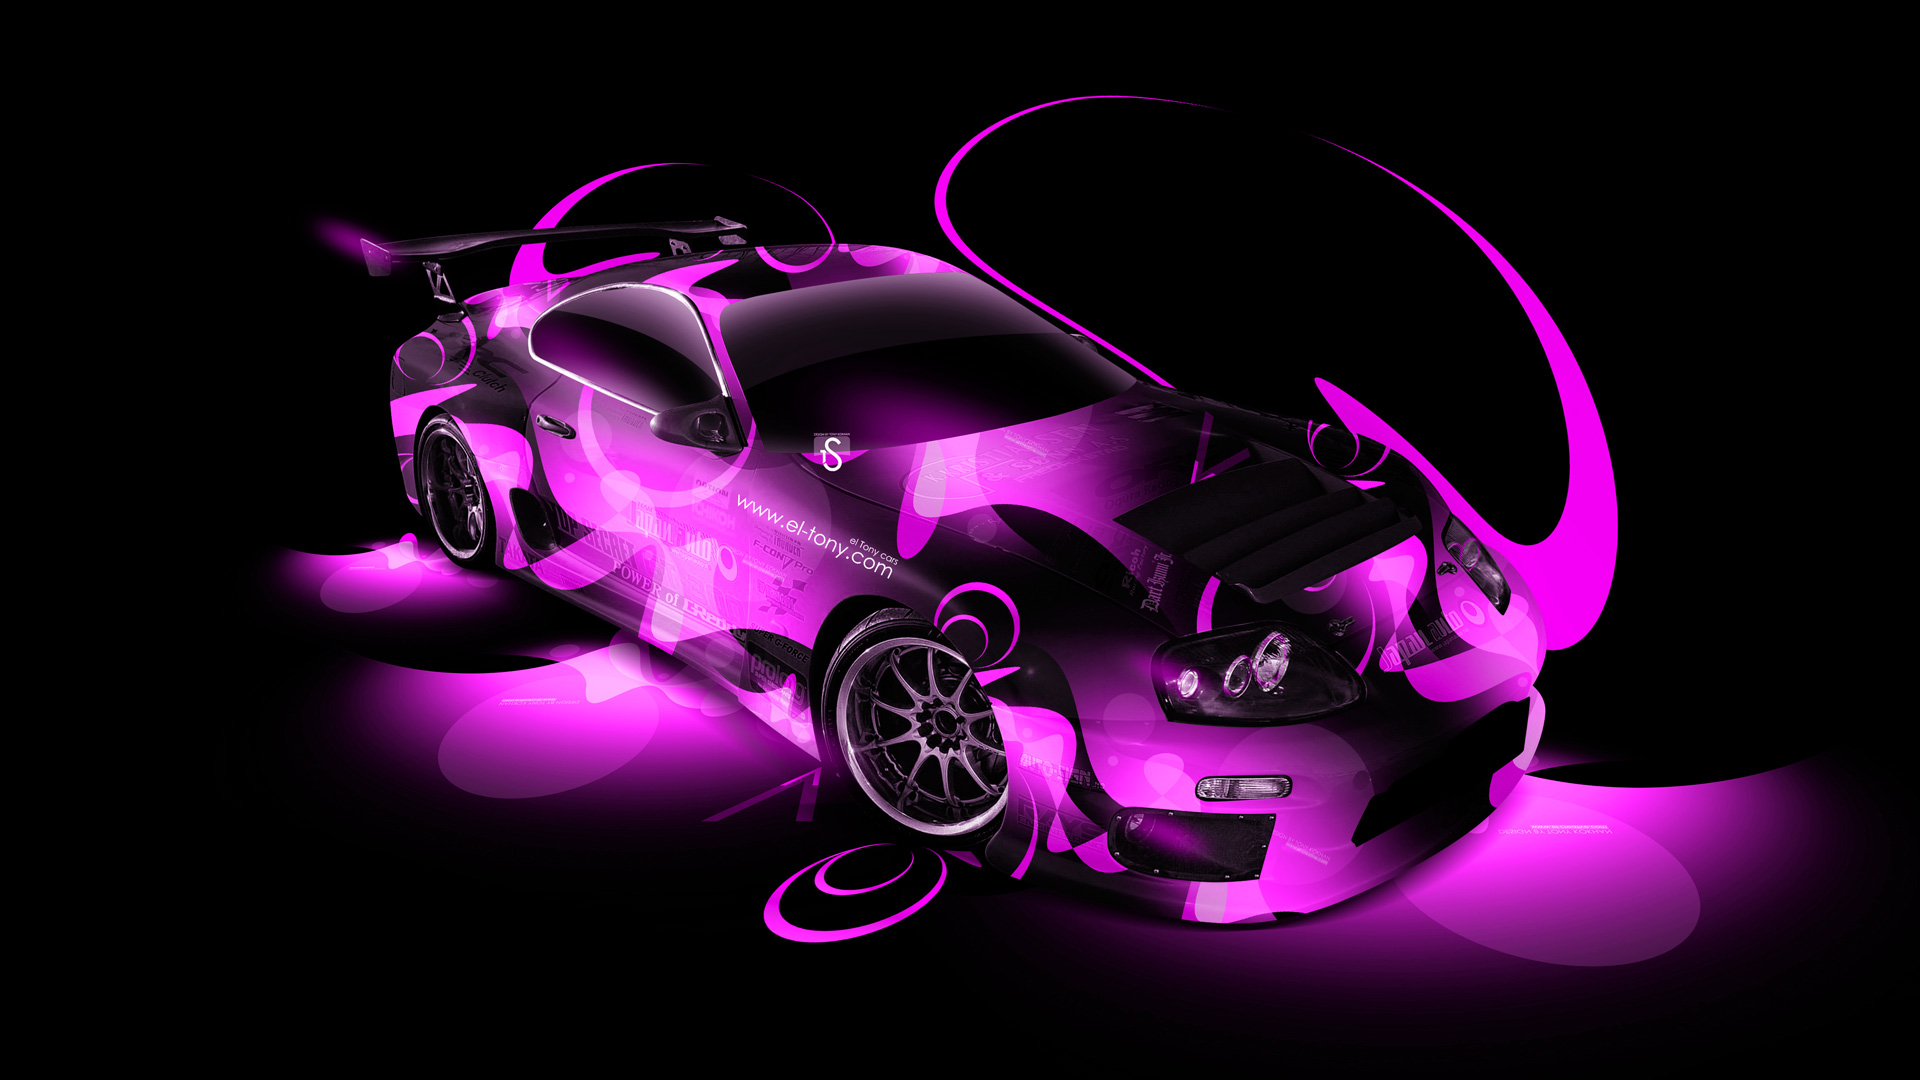 Toyota Supra Tuning JDM Super Abstract Car 2014 | El Tony